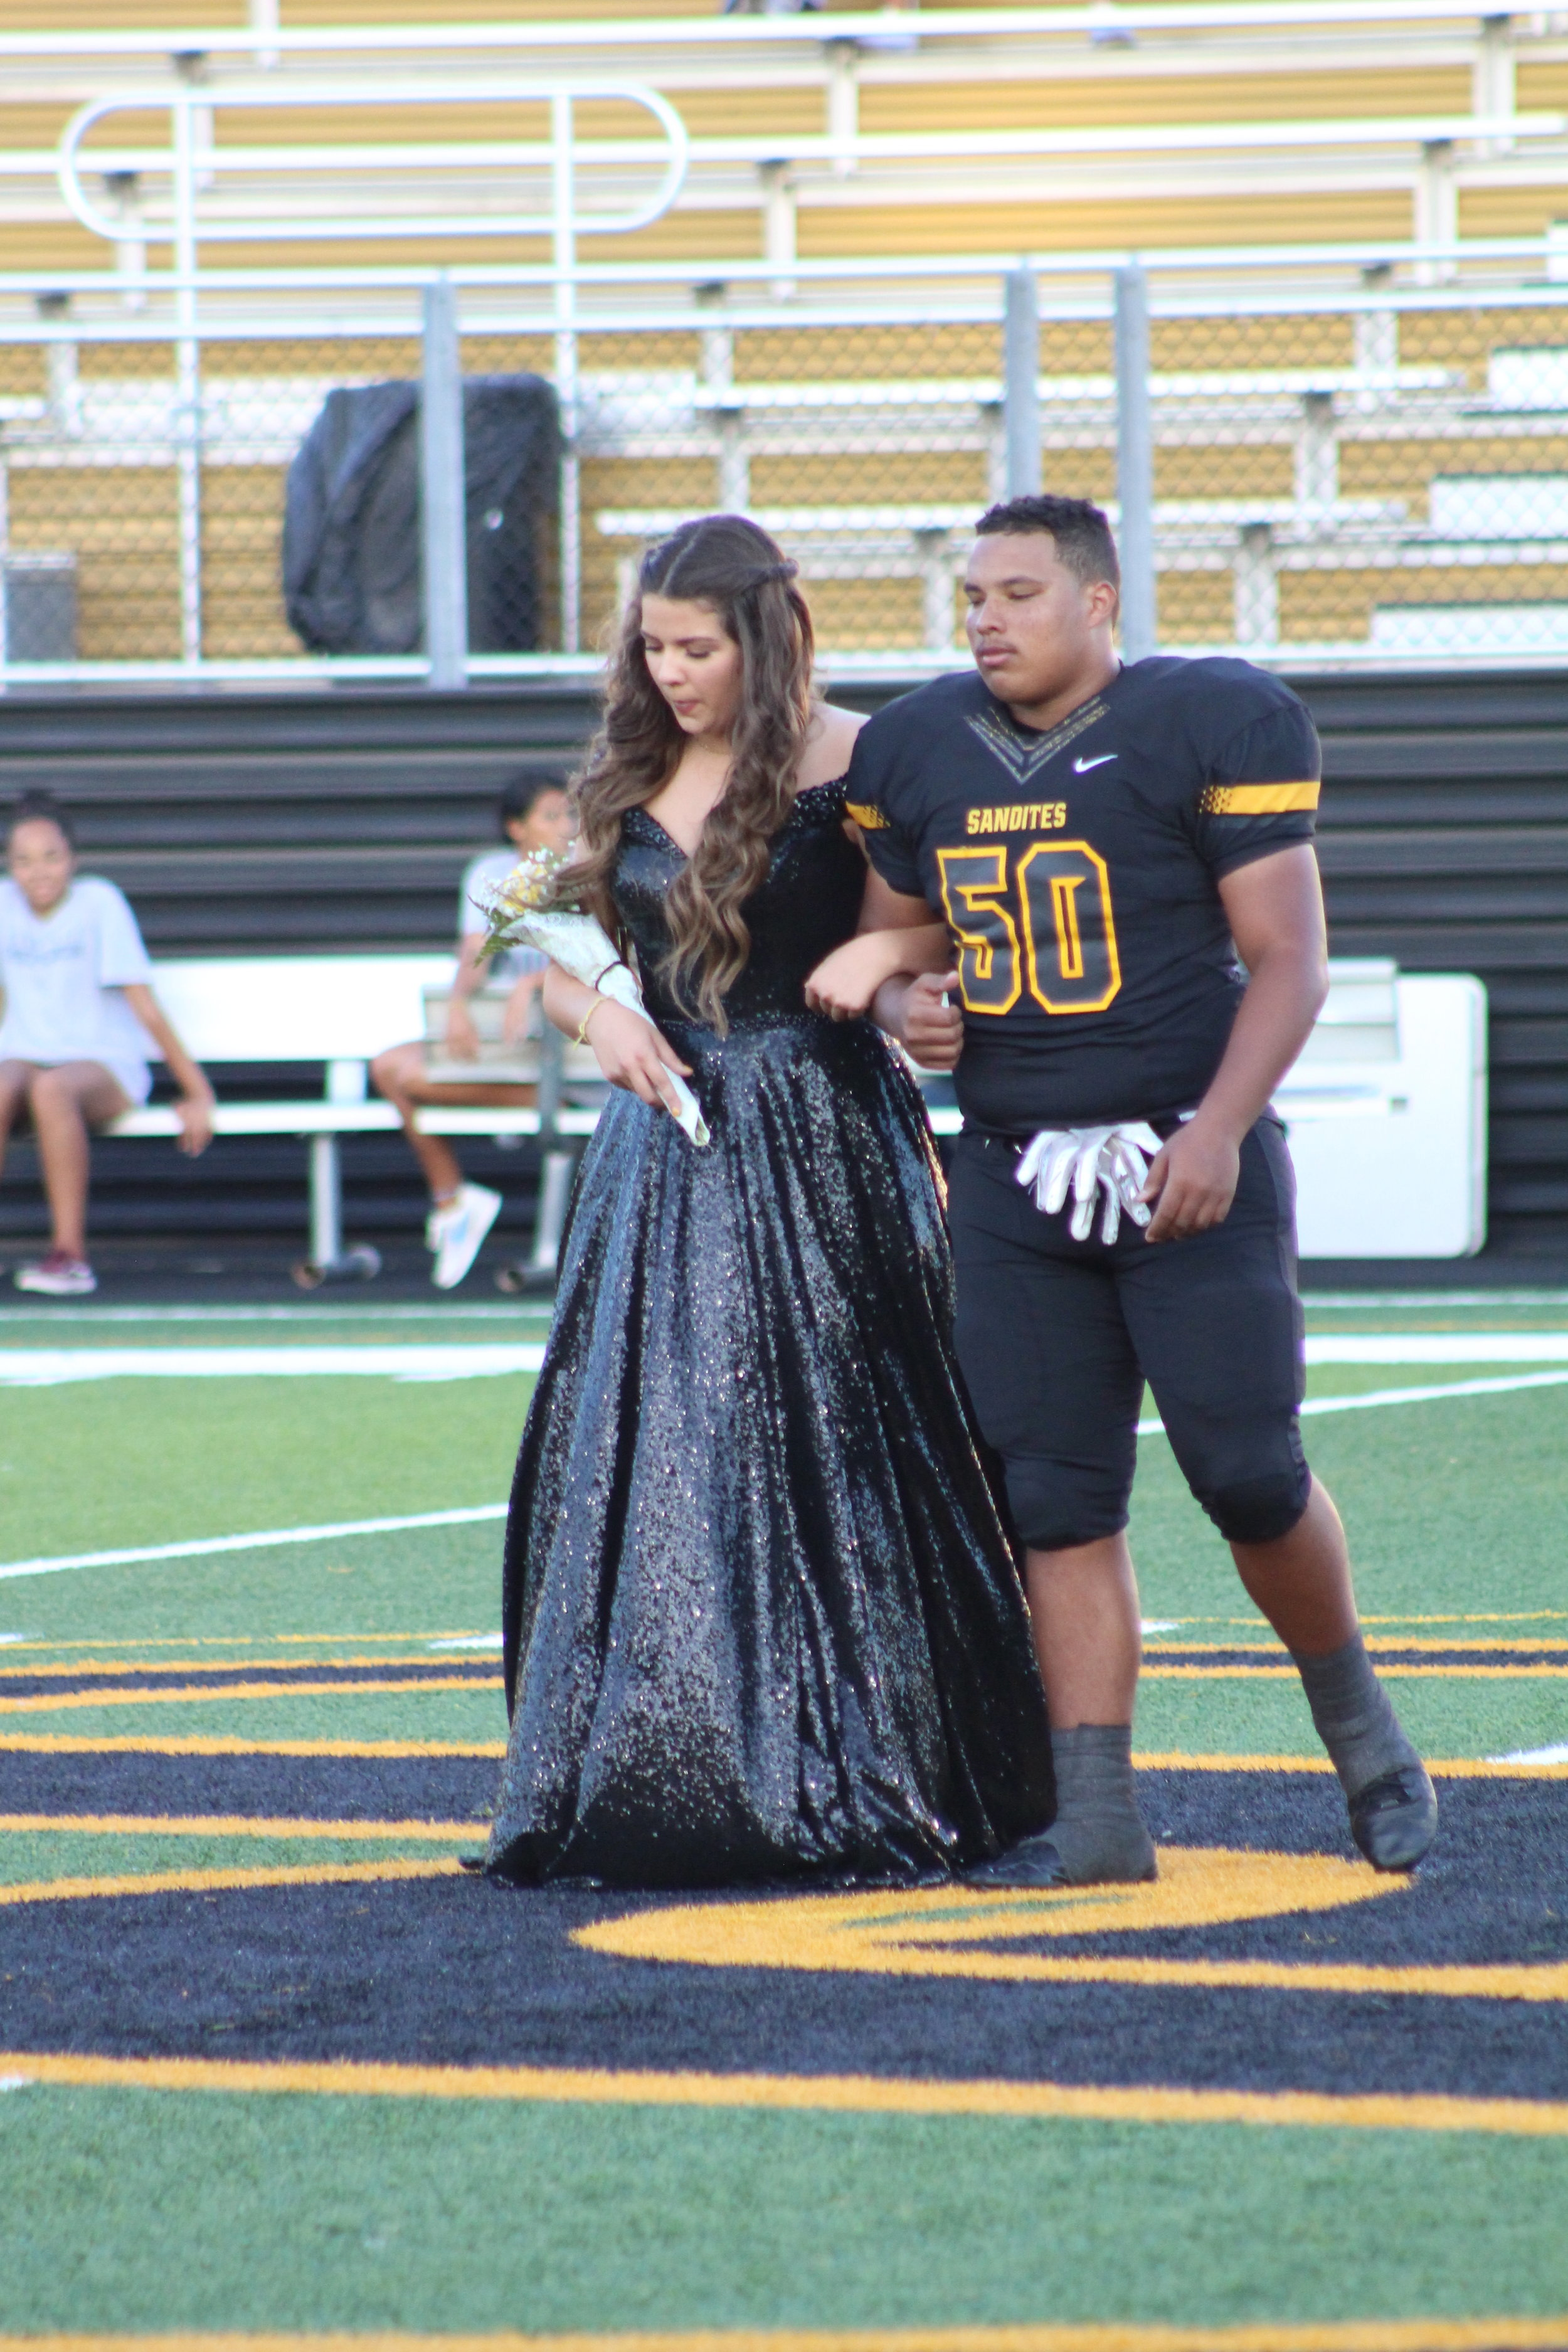 Sydney Boyd, escorted by Isaiah Jordan. Boyd is the daughter of Mark and Vicky Boyd. Jordan is the son of Alisha Thompson and Stacy Jordan. He is a three-year varsity lineman.